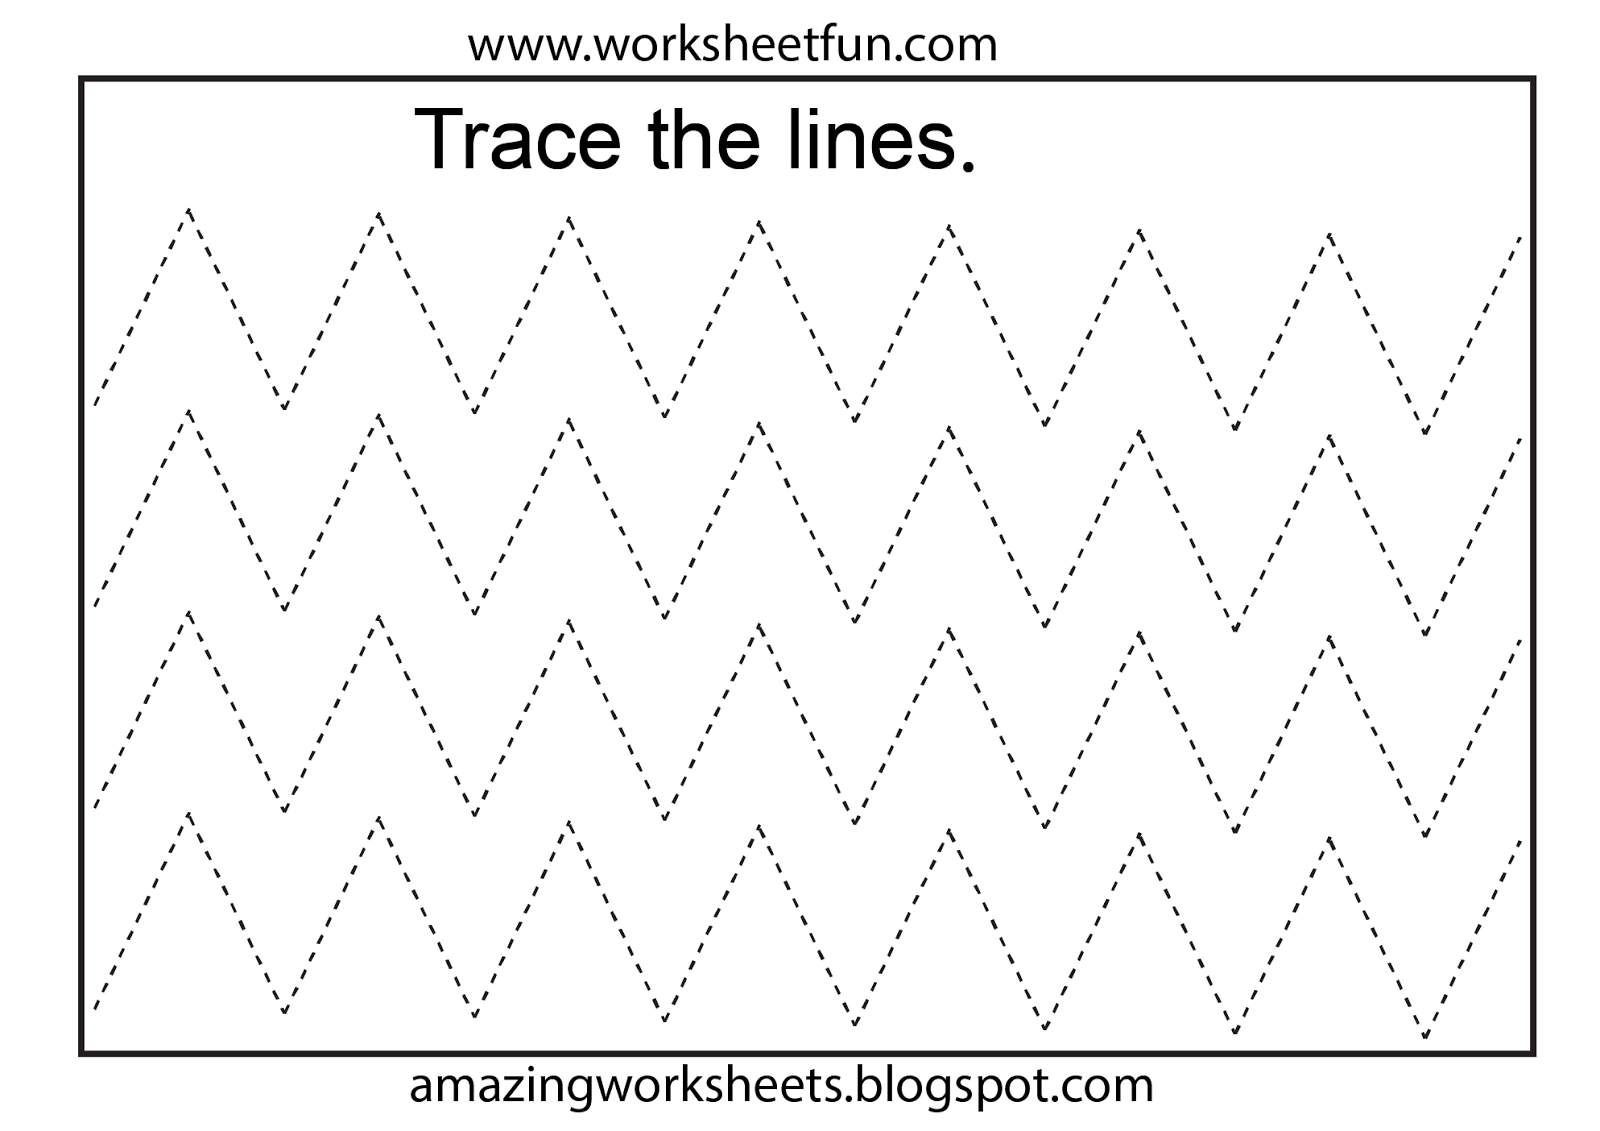 worksheet Pre K Tracing Worksheets free printable tracing worksheets library preschool printables with basic shapes